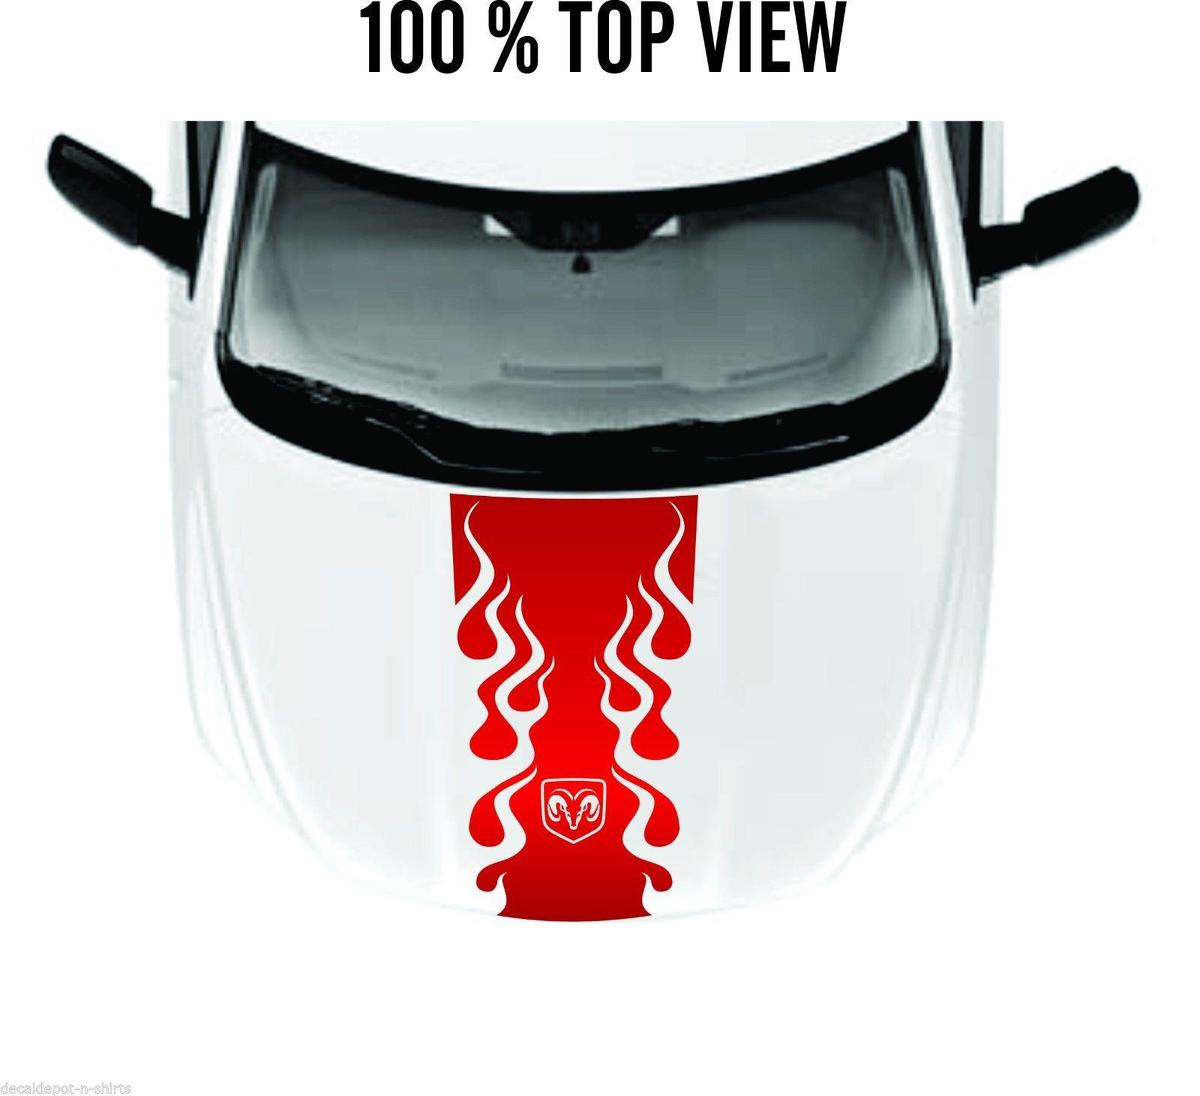 Hood Decal Vinyl Stripes for DODGE Ram Hemi 1500, 2500HD, 3500HD Rebel SRT New